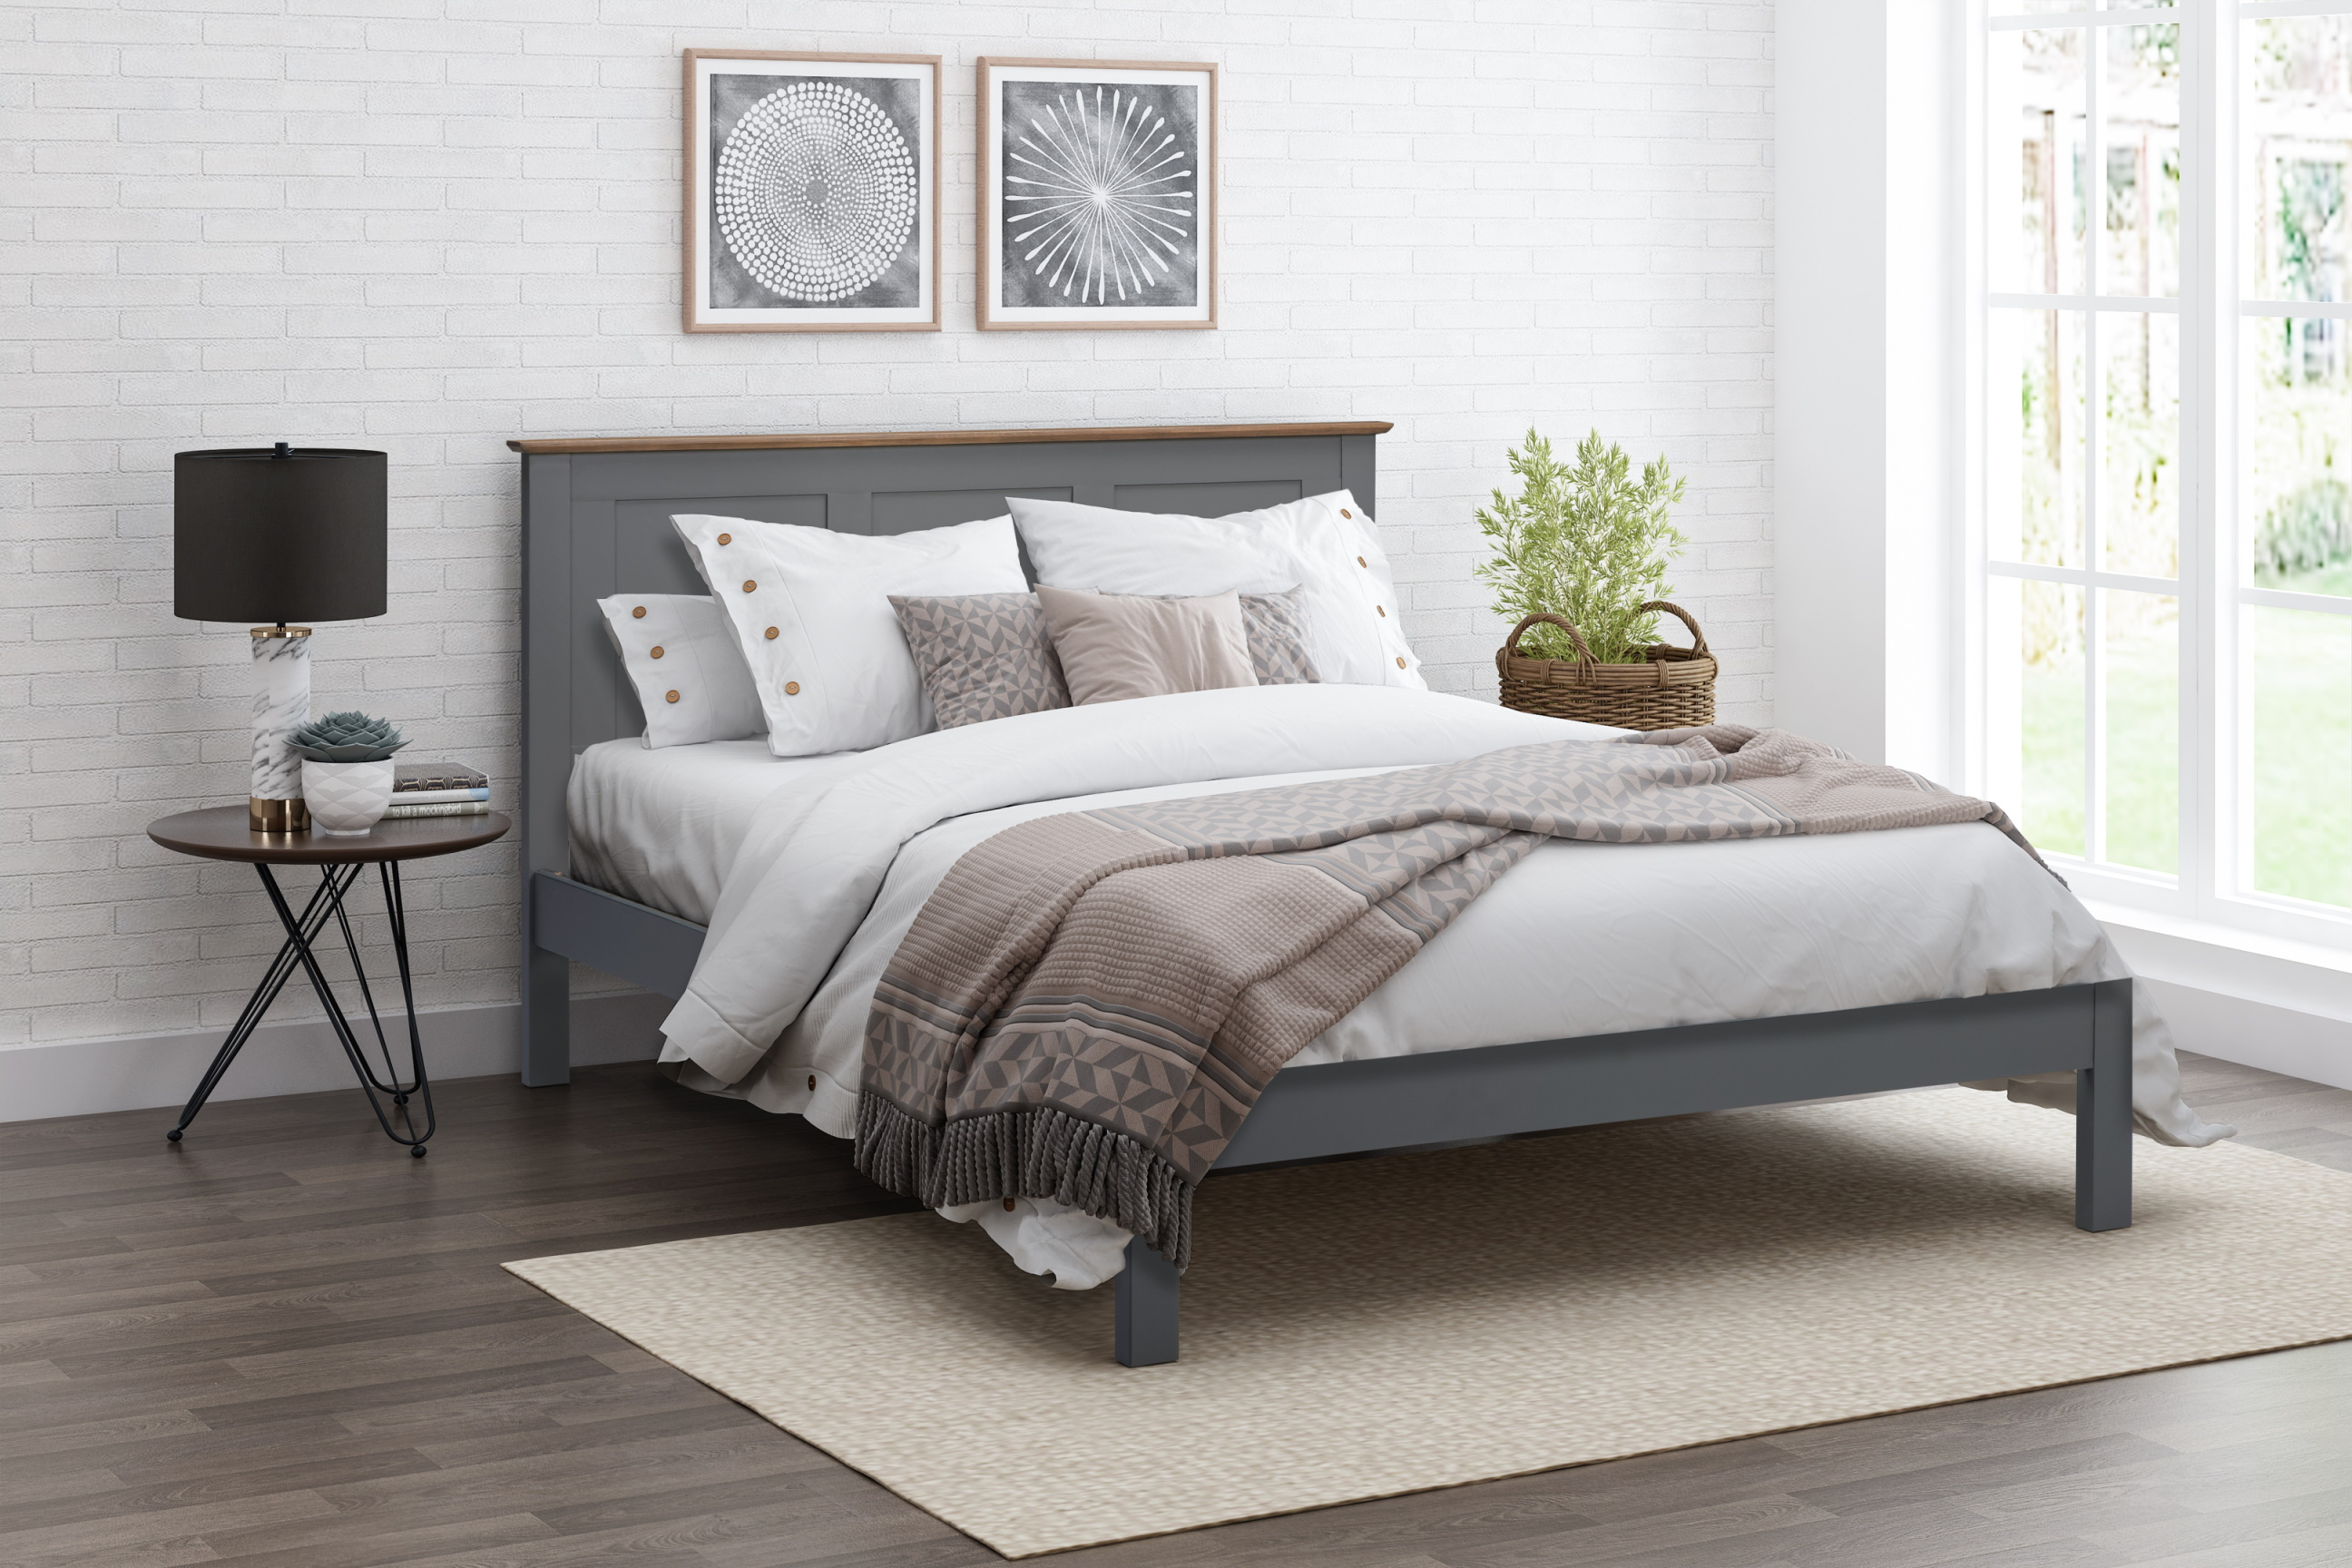 4ft6 Double Connor Grey Painted Solid Wood Bed Frame Bedstead Helibeds